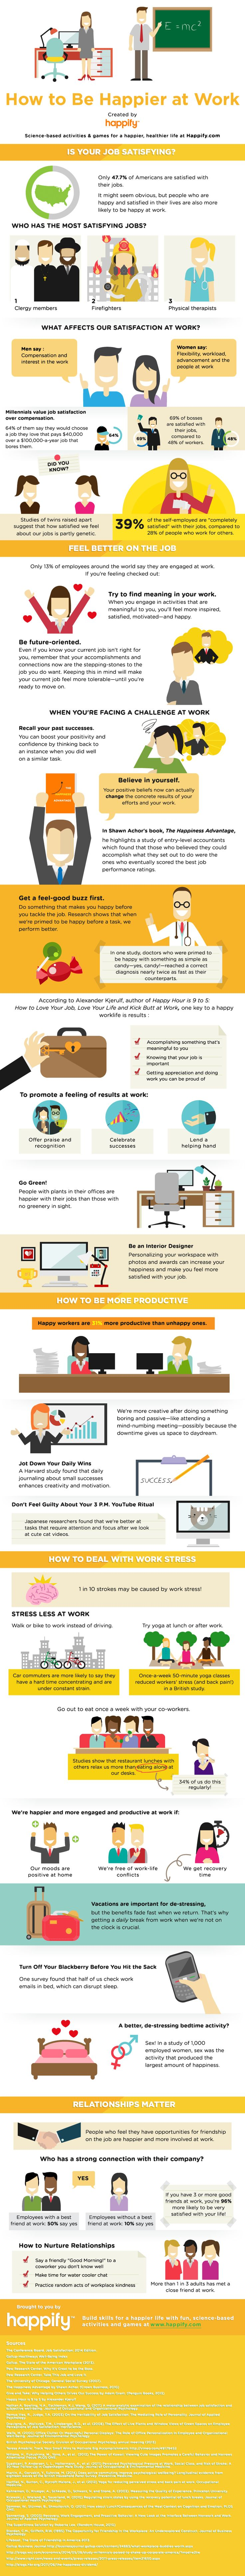 Top tips to staying stress free in the workplace infographic - Infographic Find Your Work Bliss